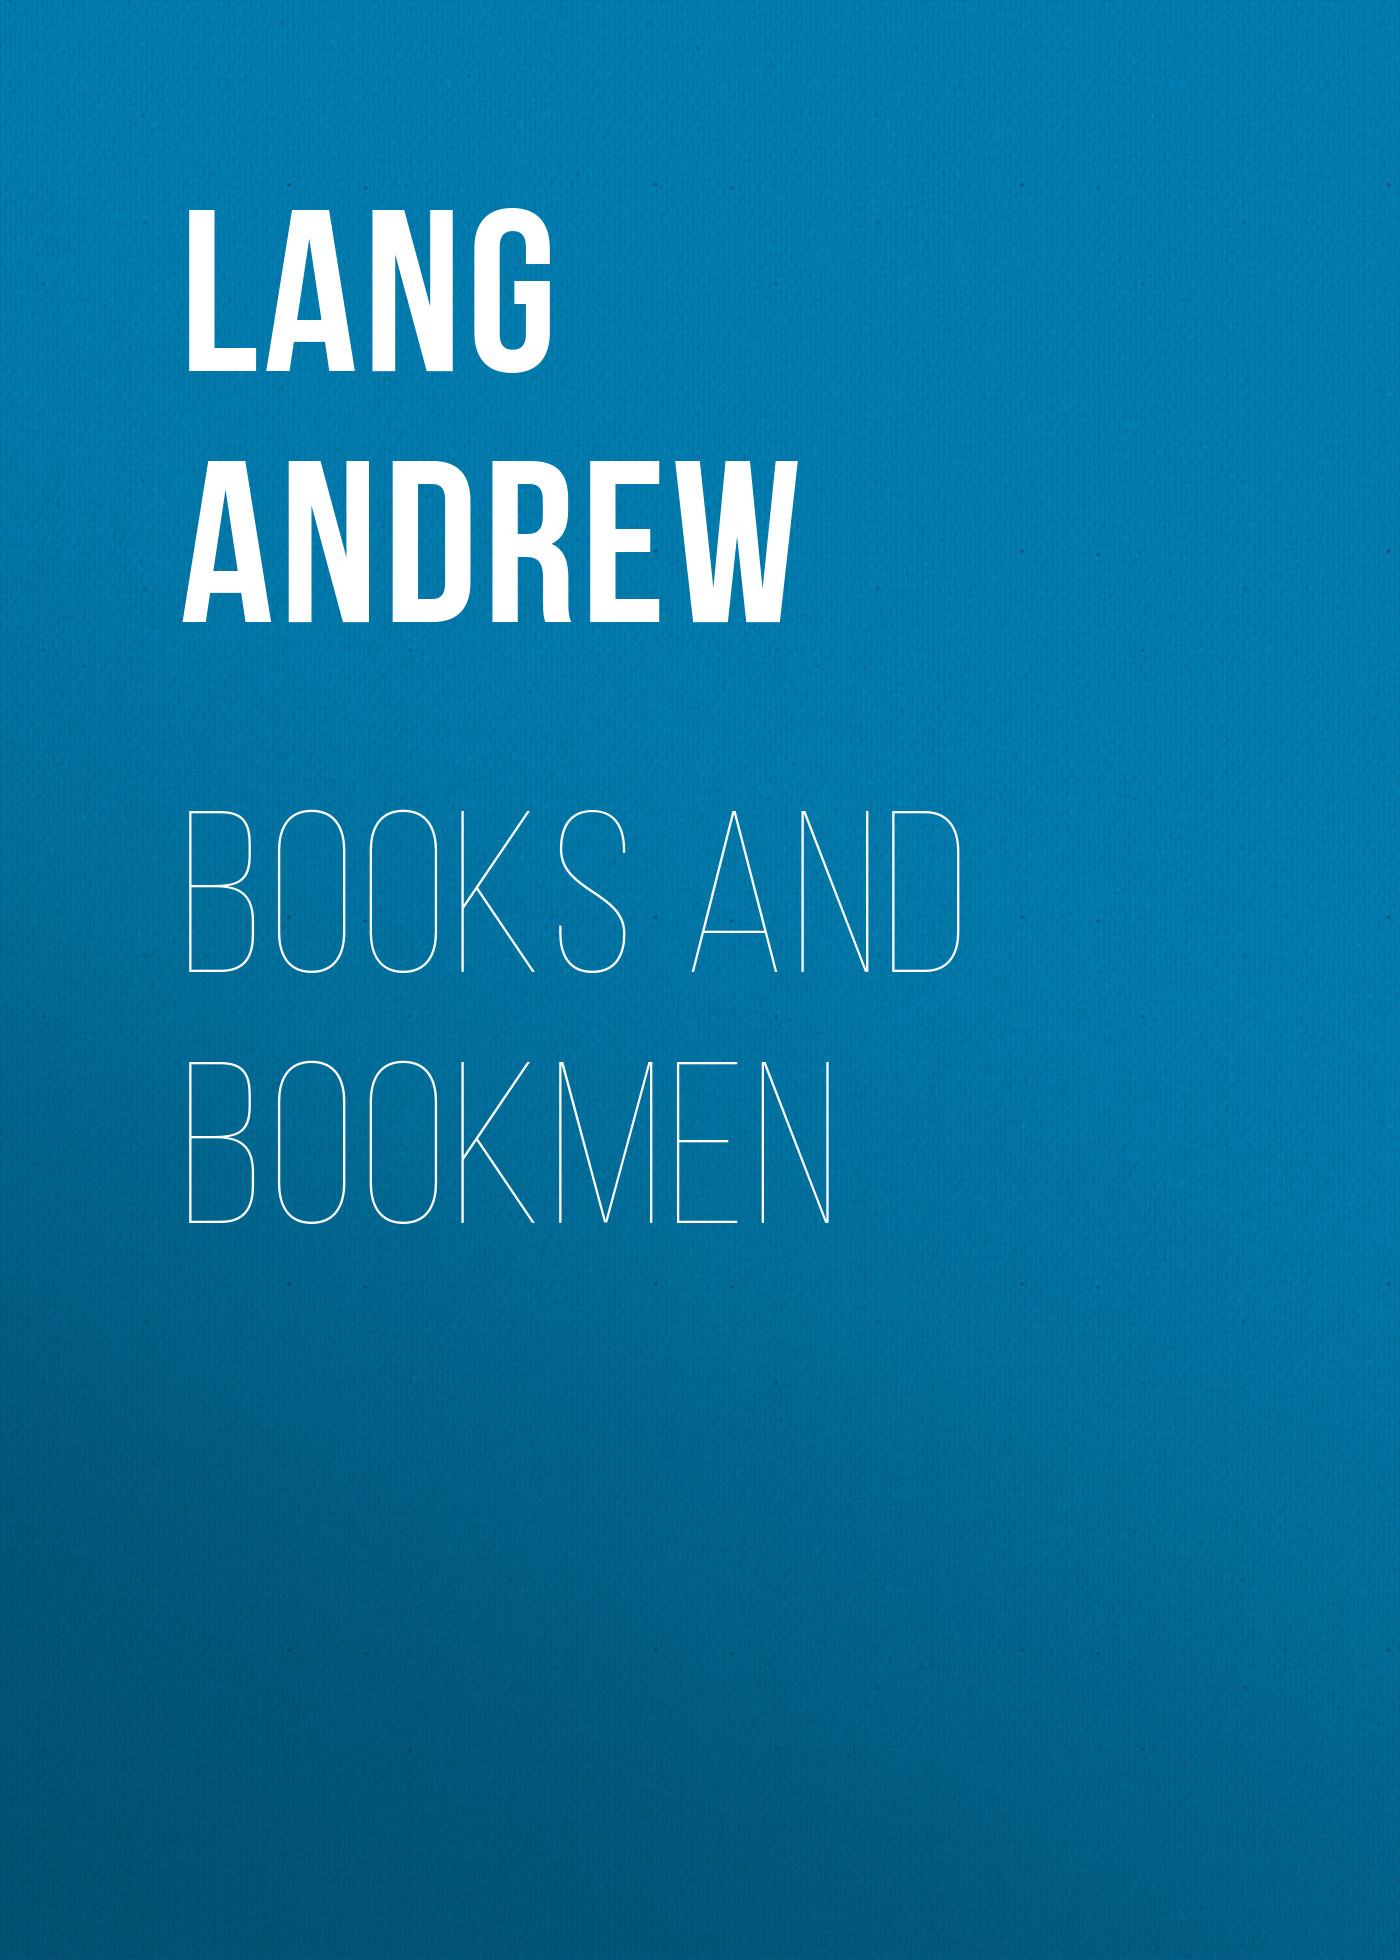 Books and Bookmen_Lang Andrew